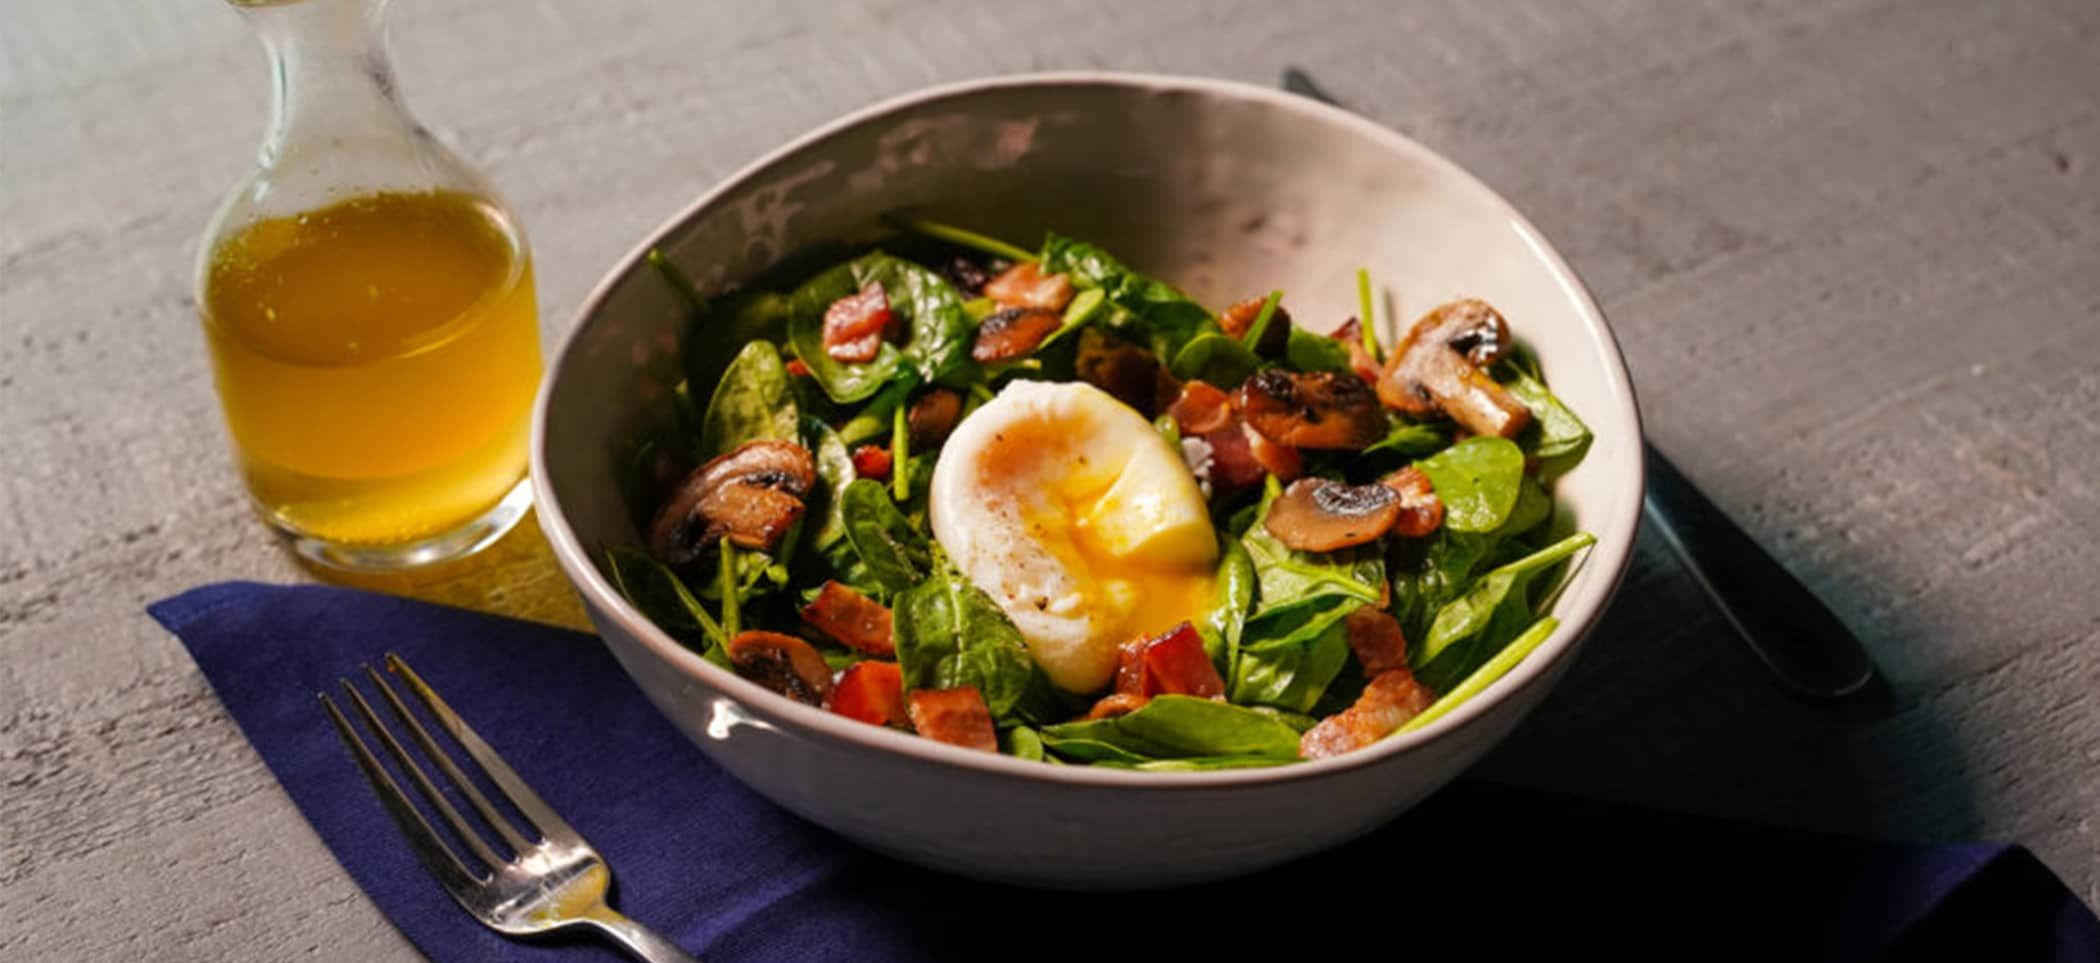 Spinach Salad with Bacon, Mushrooms, Poached Eggs and Bacon Vinaigrette - American Egg Board